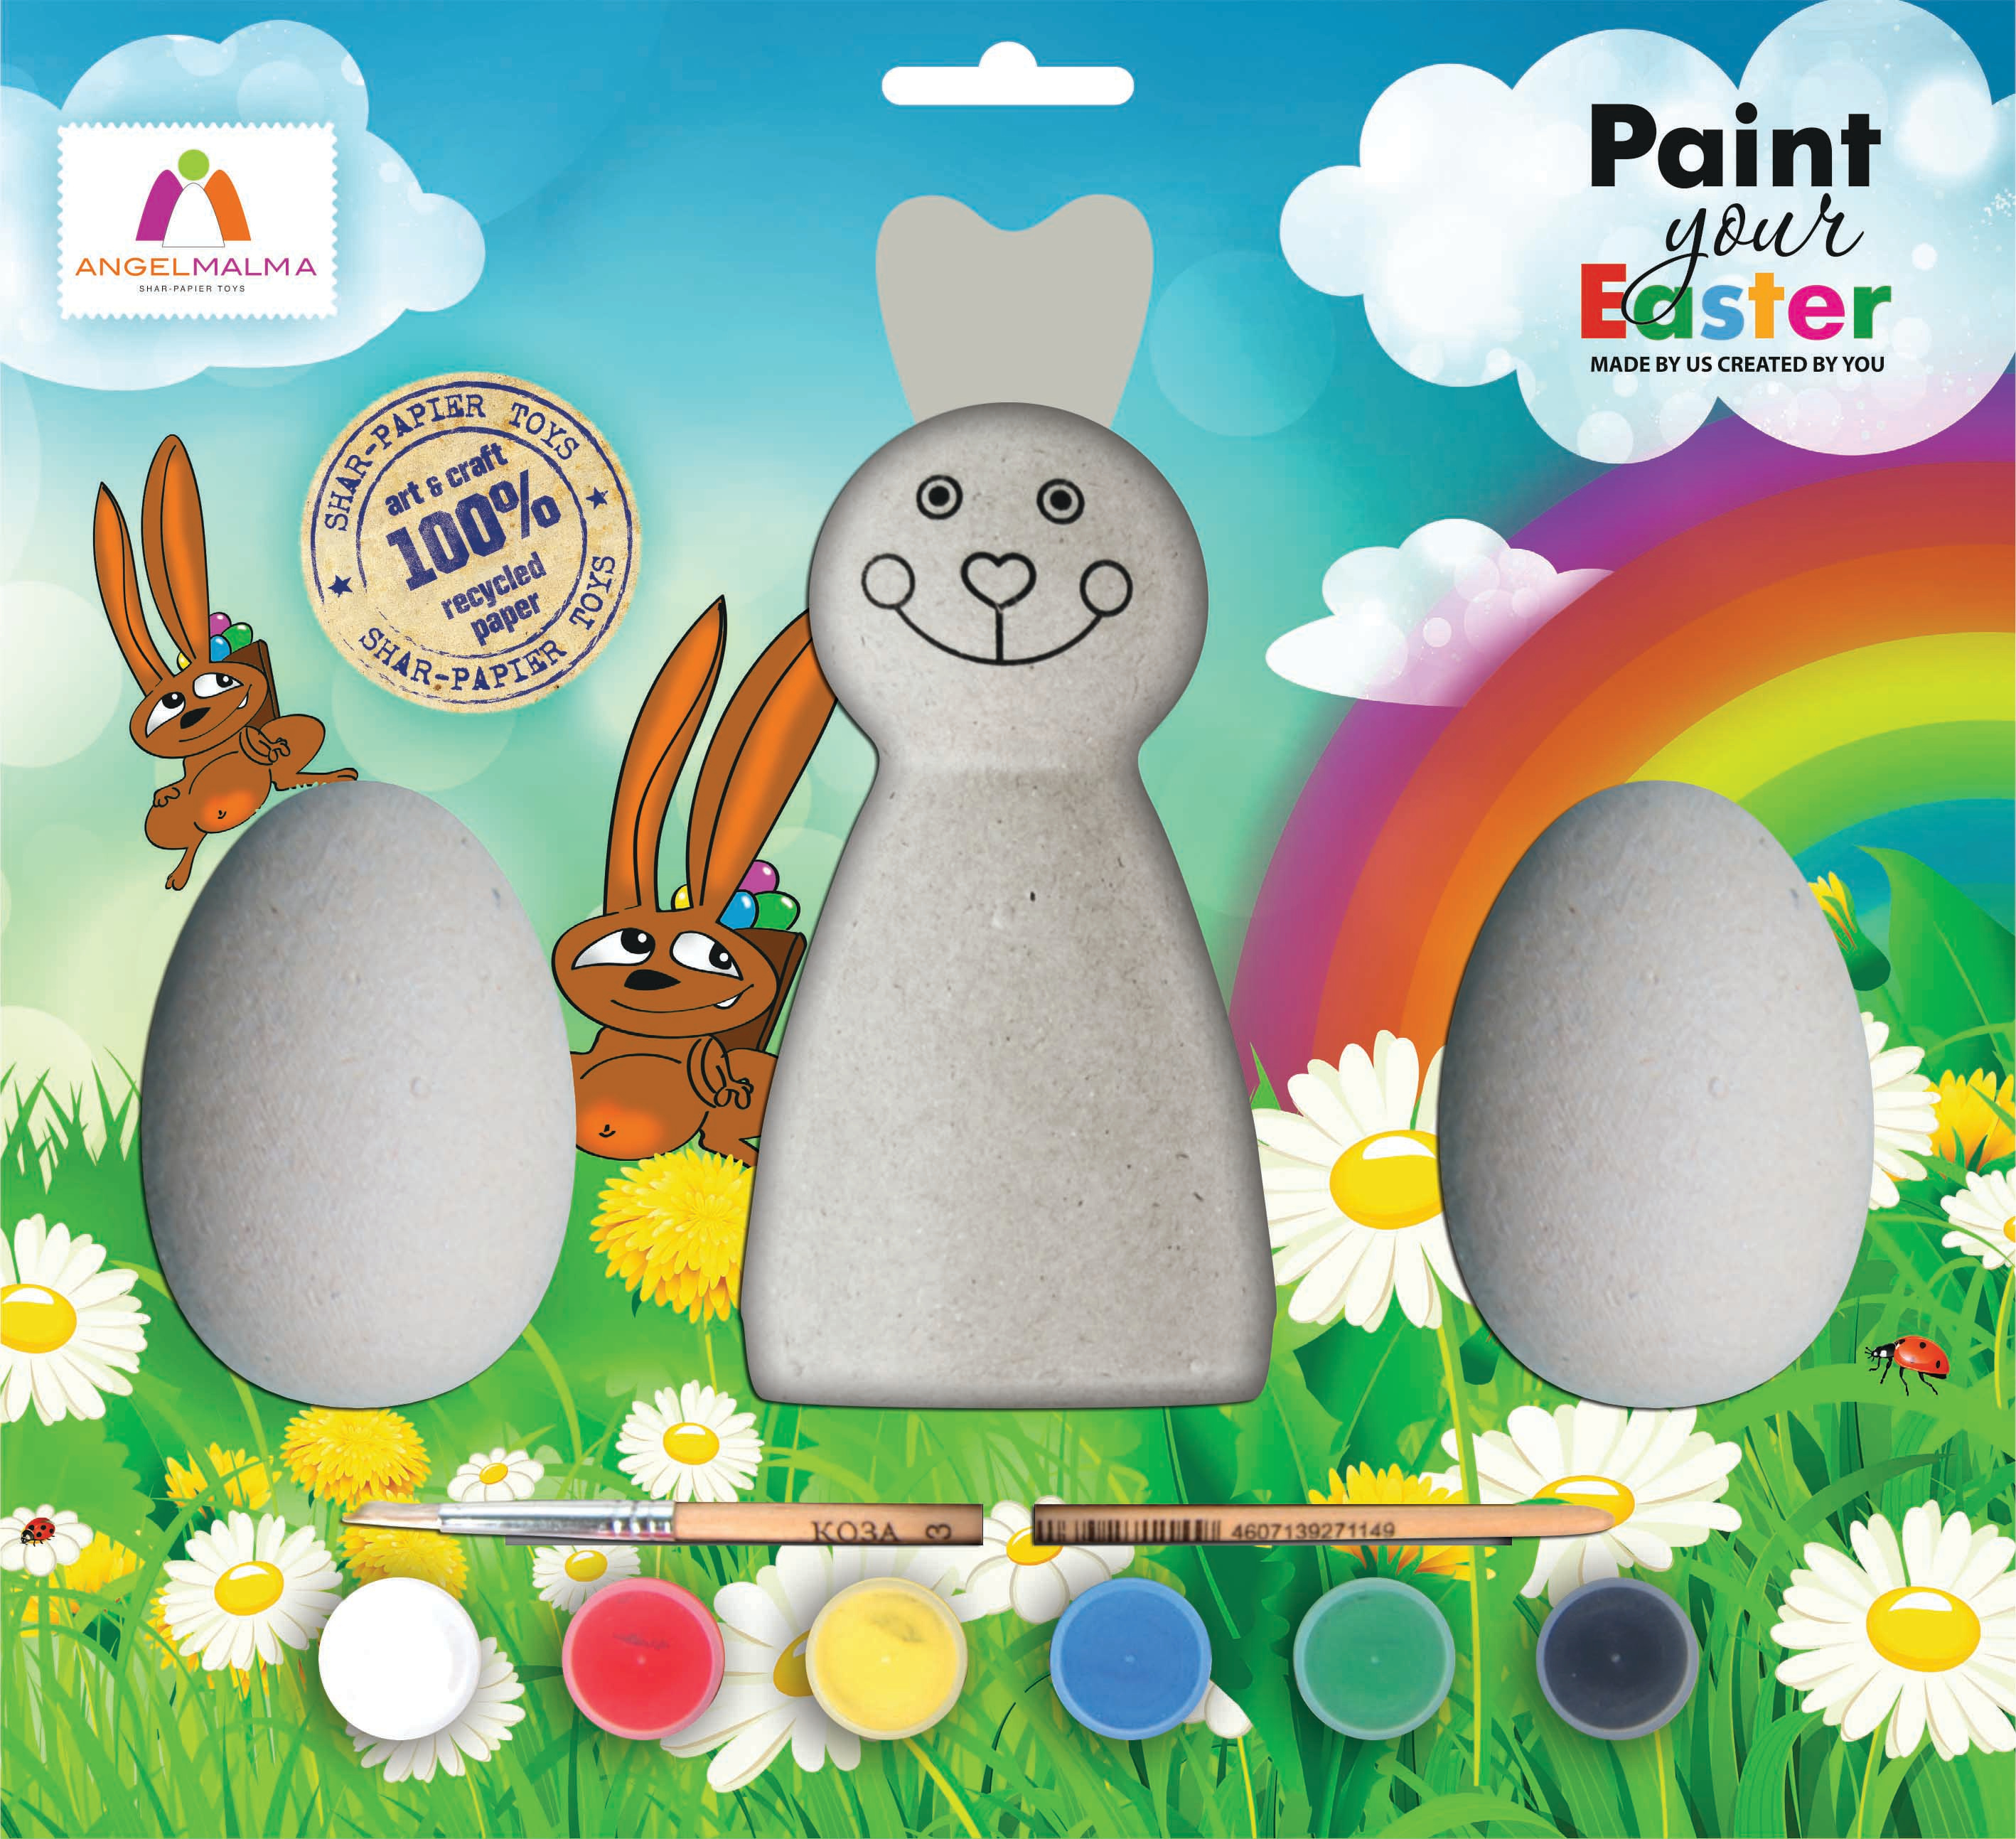 Paint your Easter!